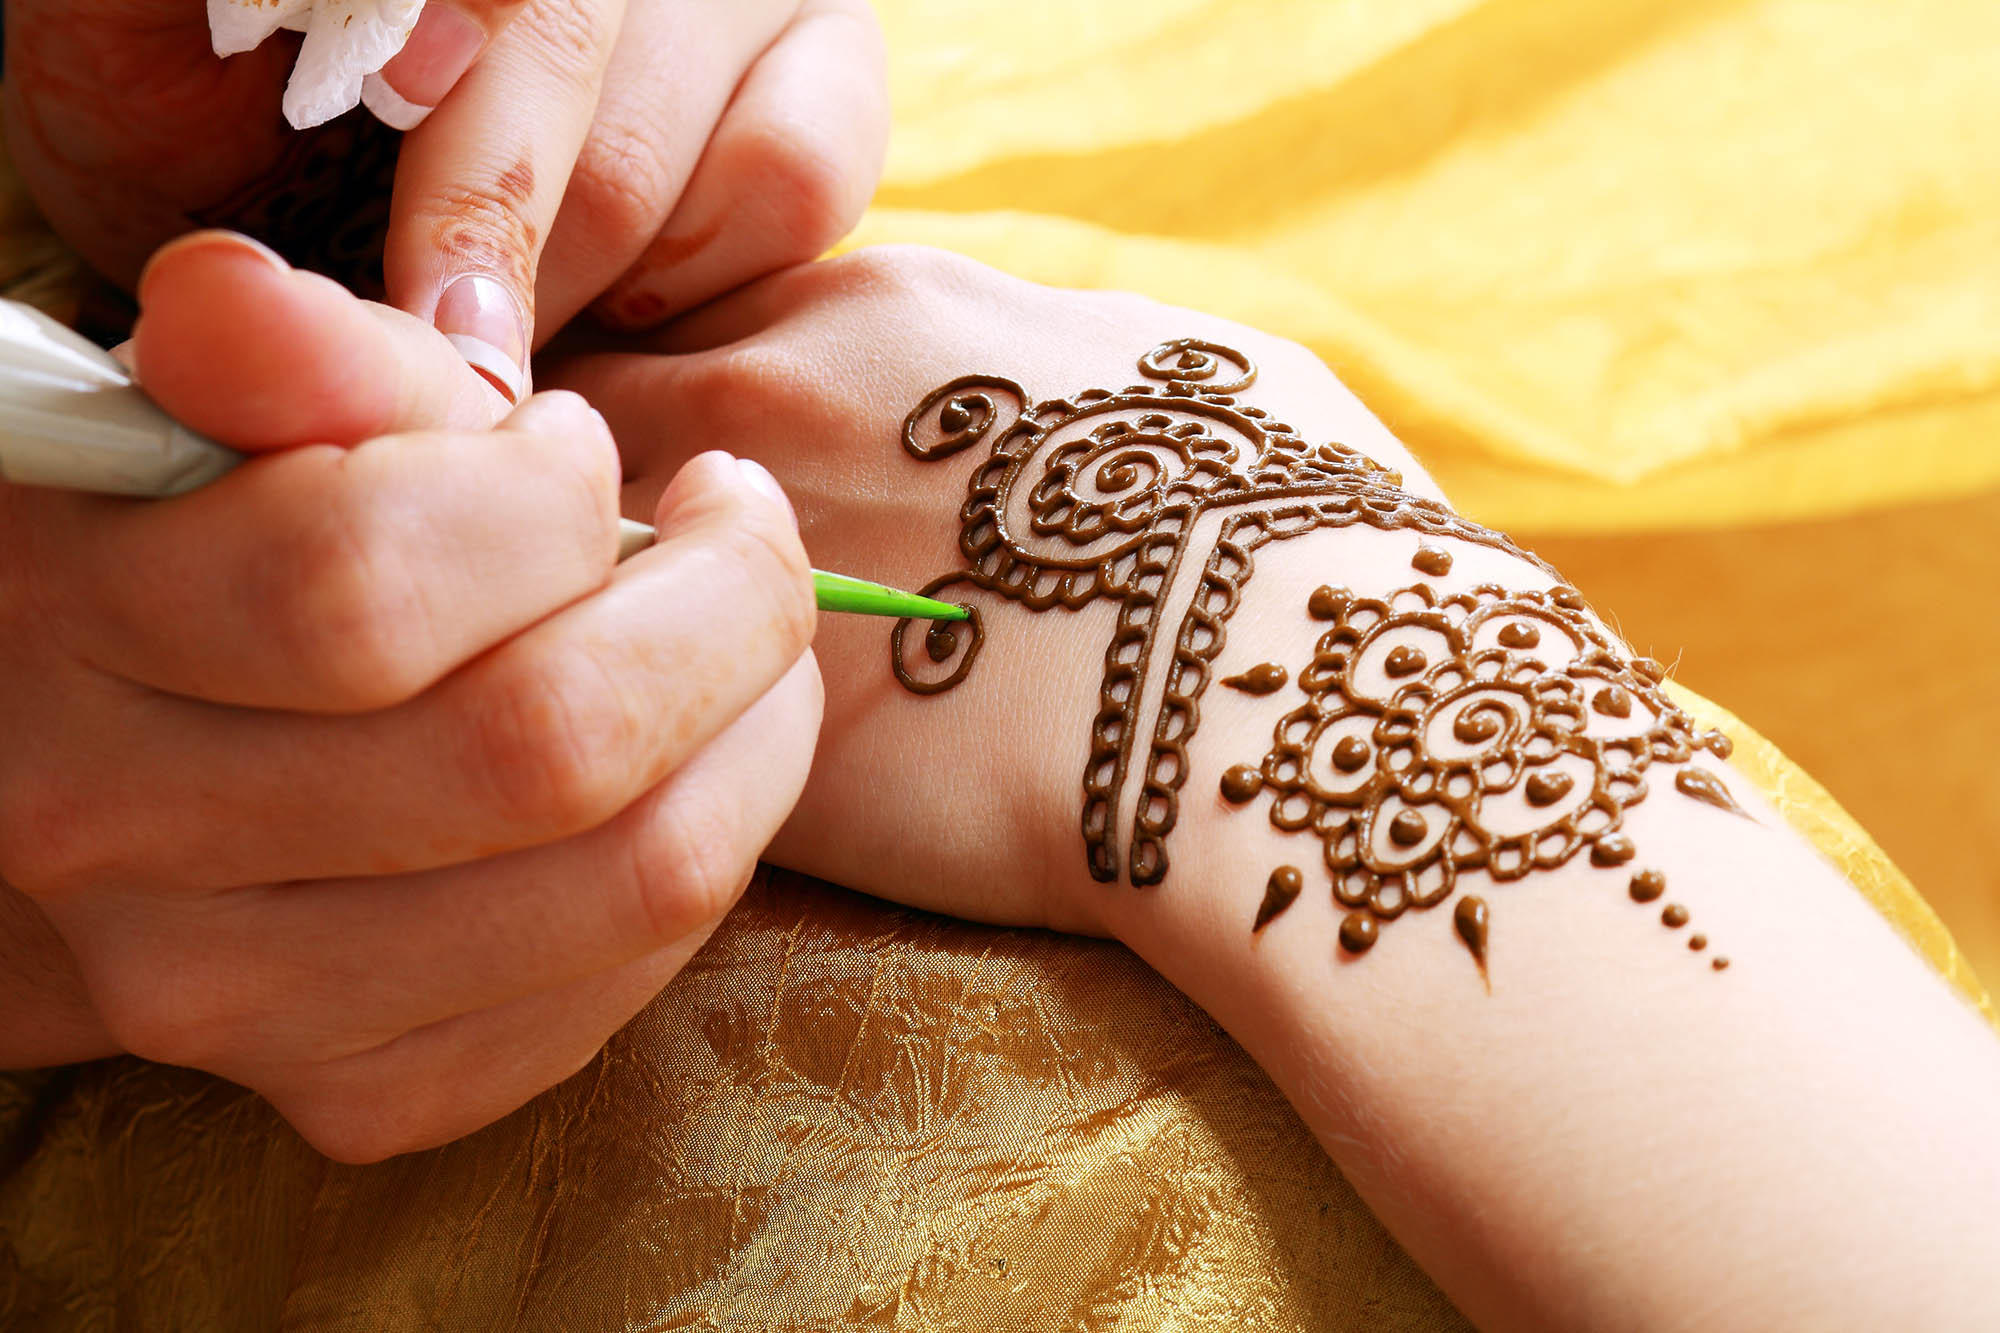 henna being applied to hand over golden fabric